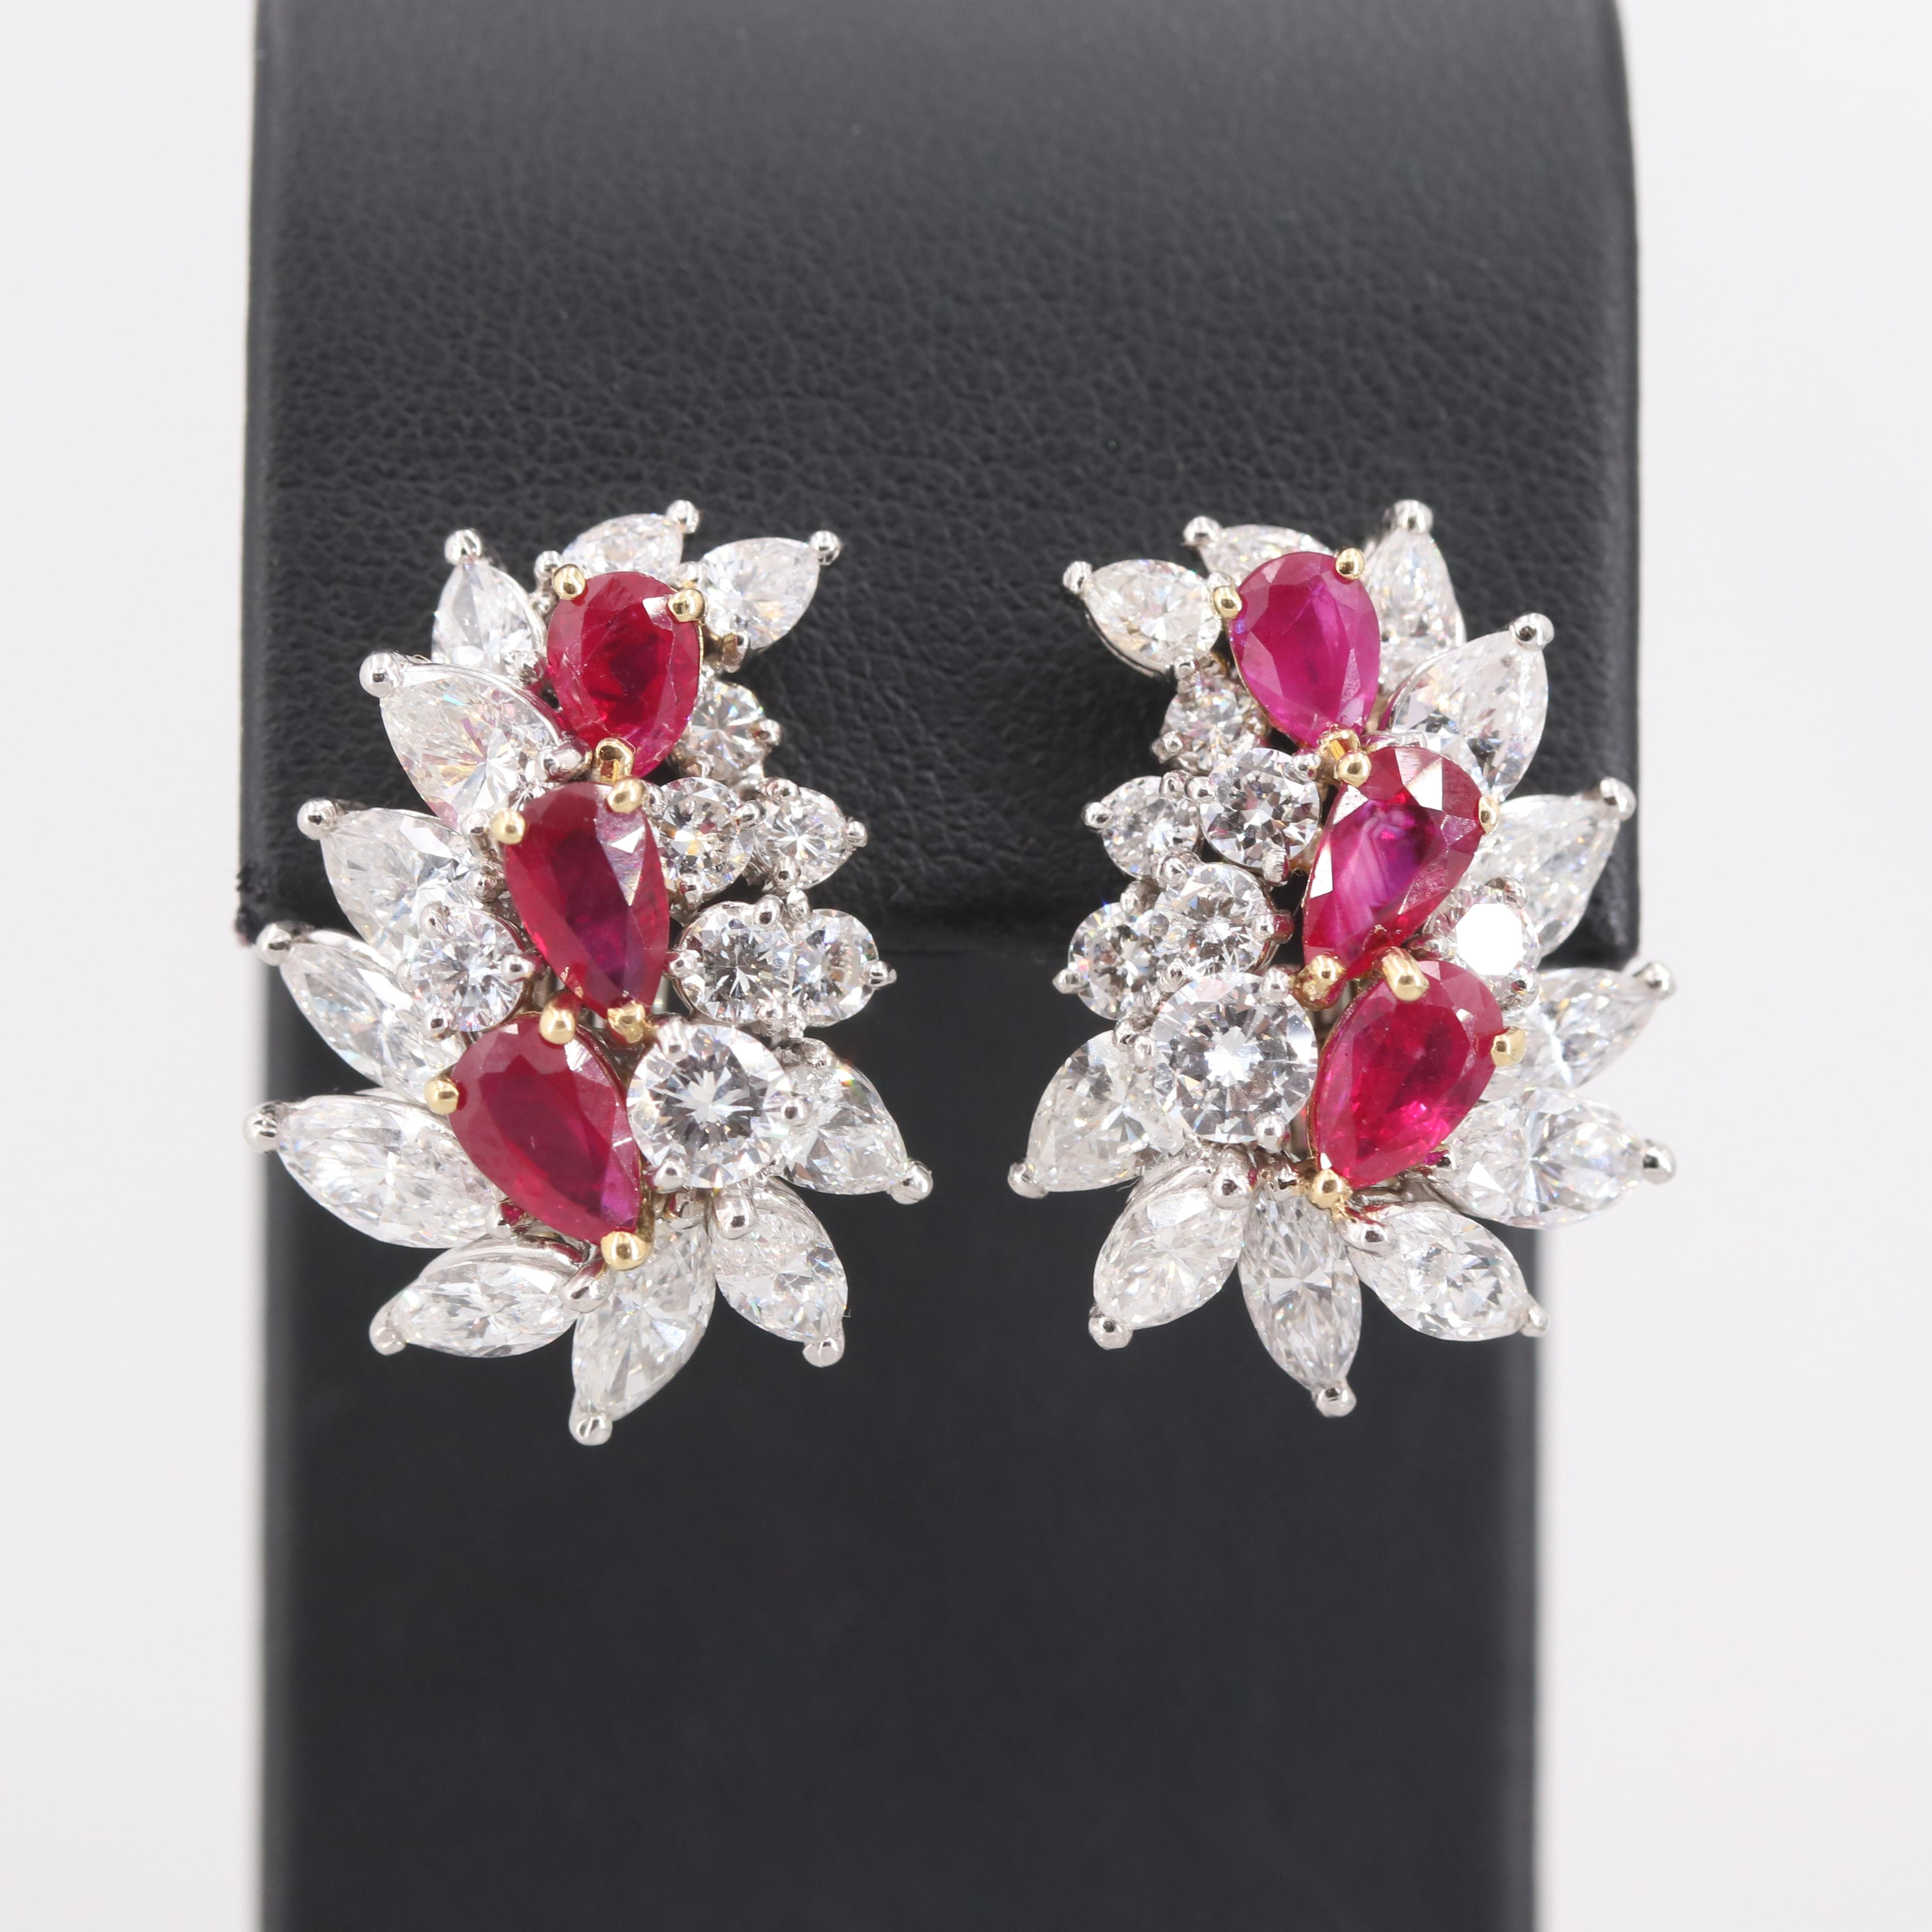 Platinum 4.77 CTW Burmese Ruby and 8.95 CTW Diamond Earrings with AGL Report